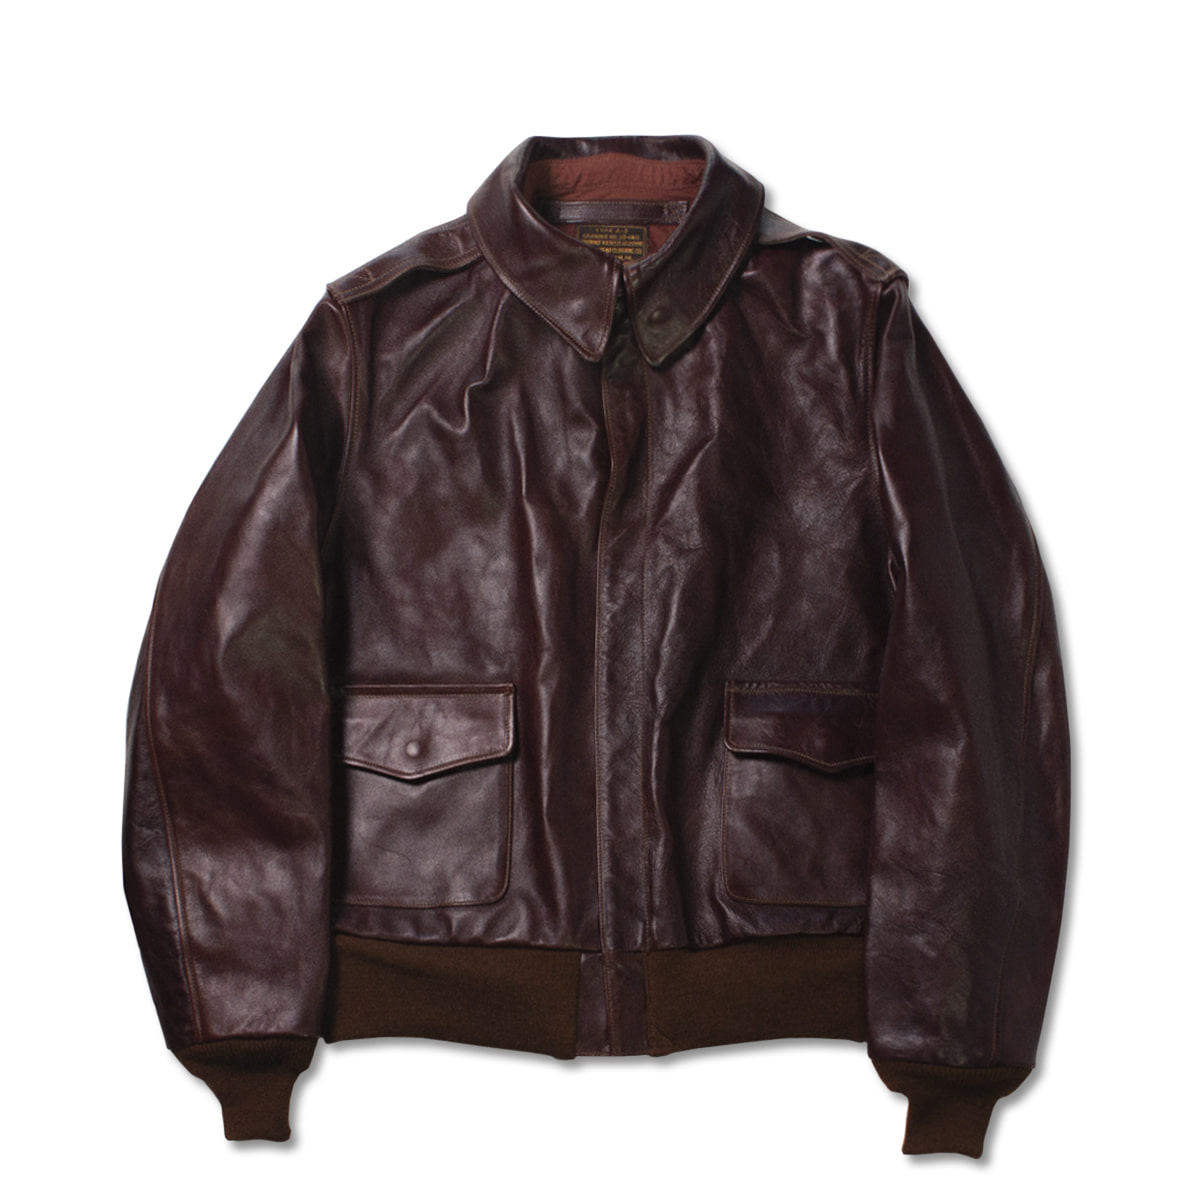 [BUZZ RICKSON'S] A-2 LEATHER JACKET 'BROWN'